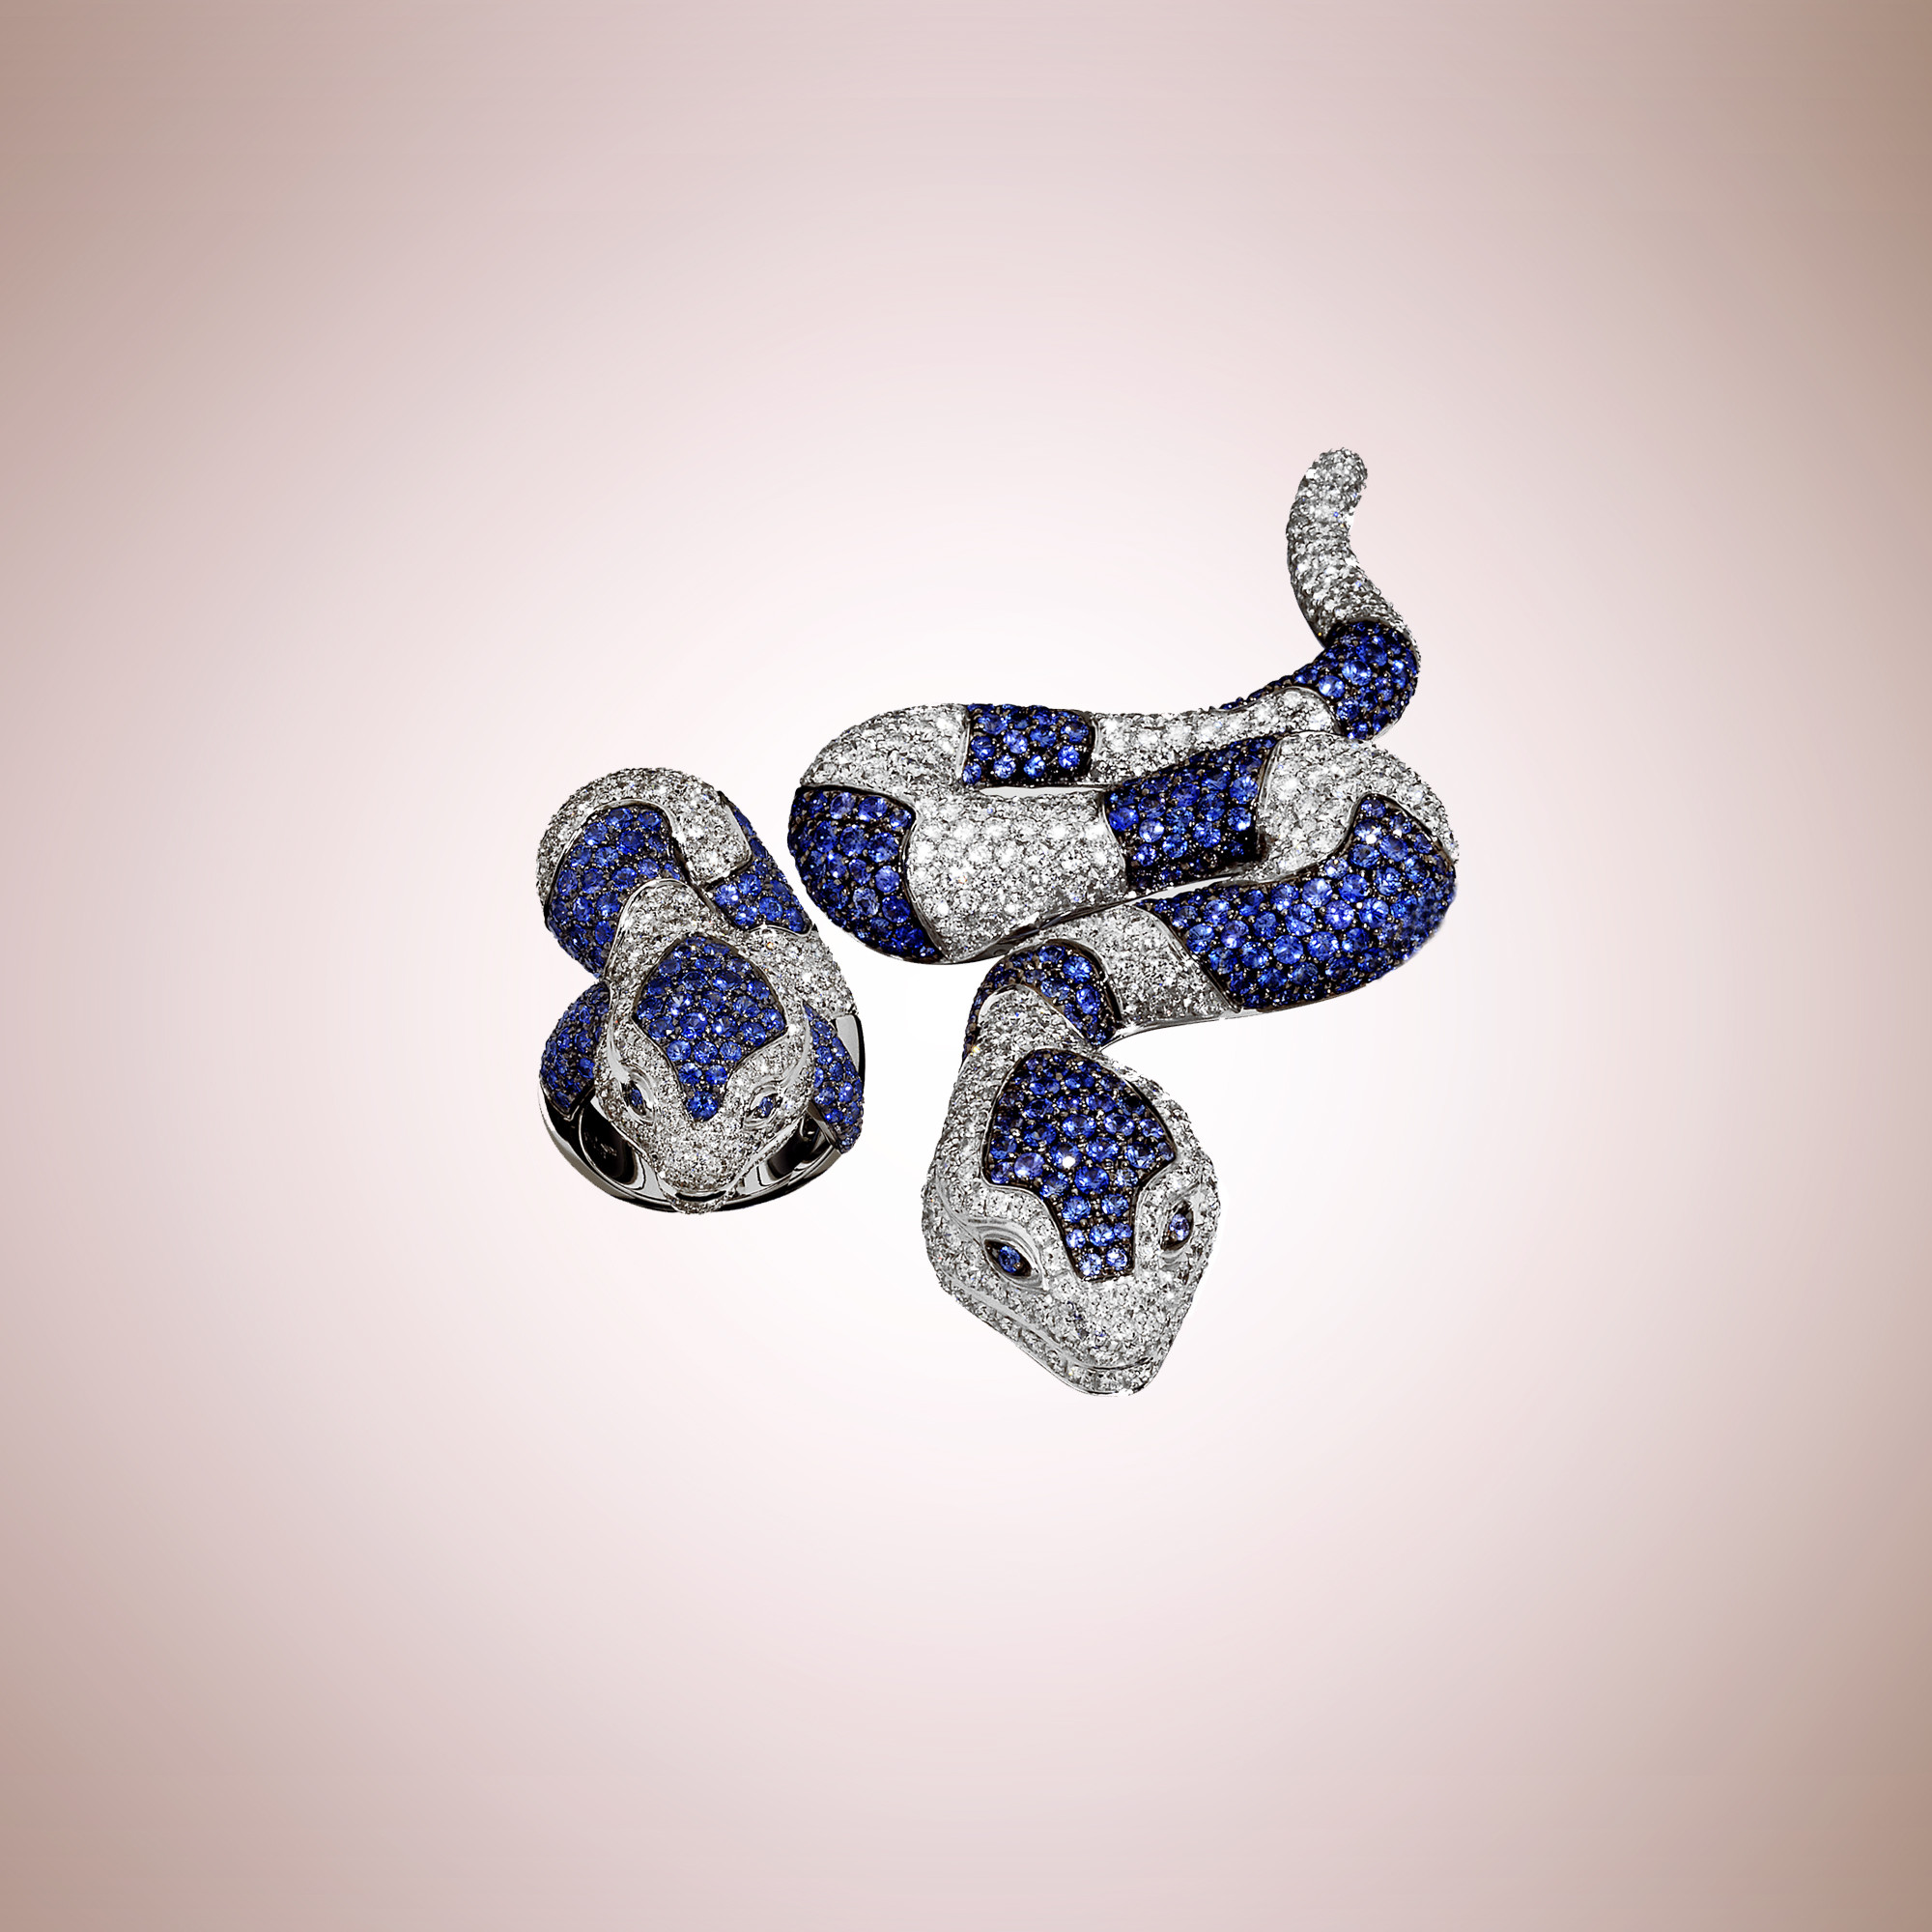 Snake ring and brooch